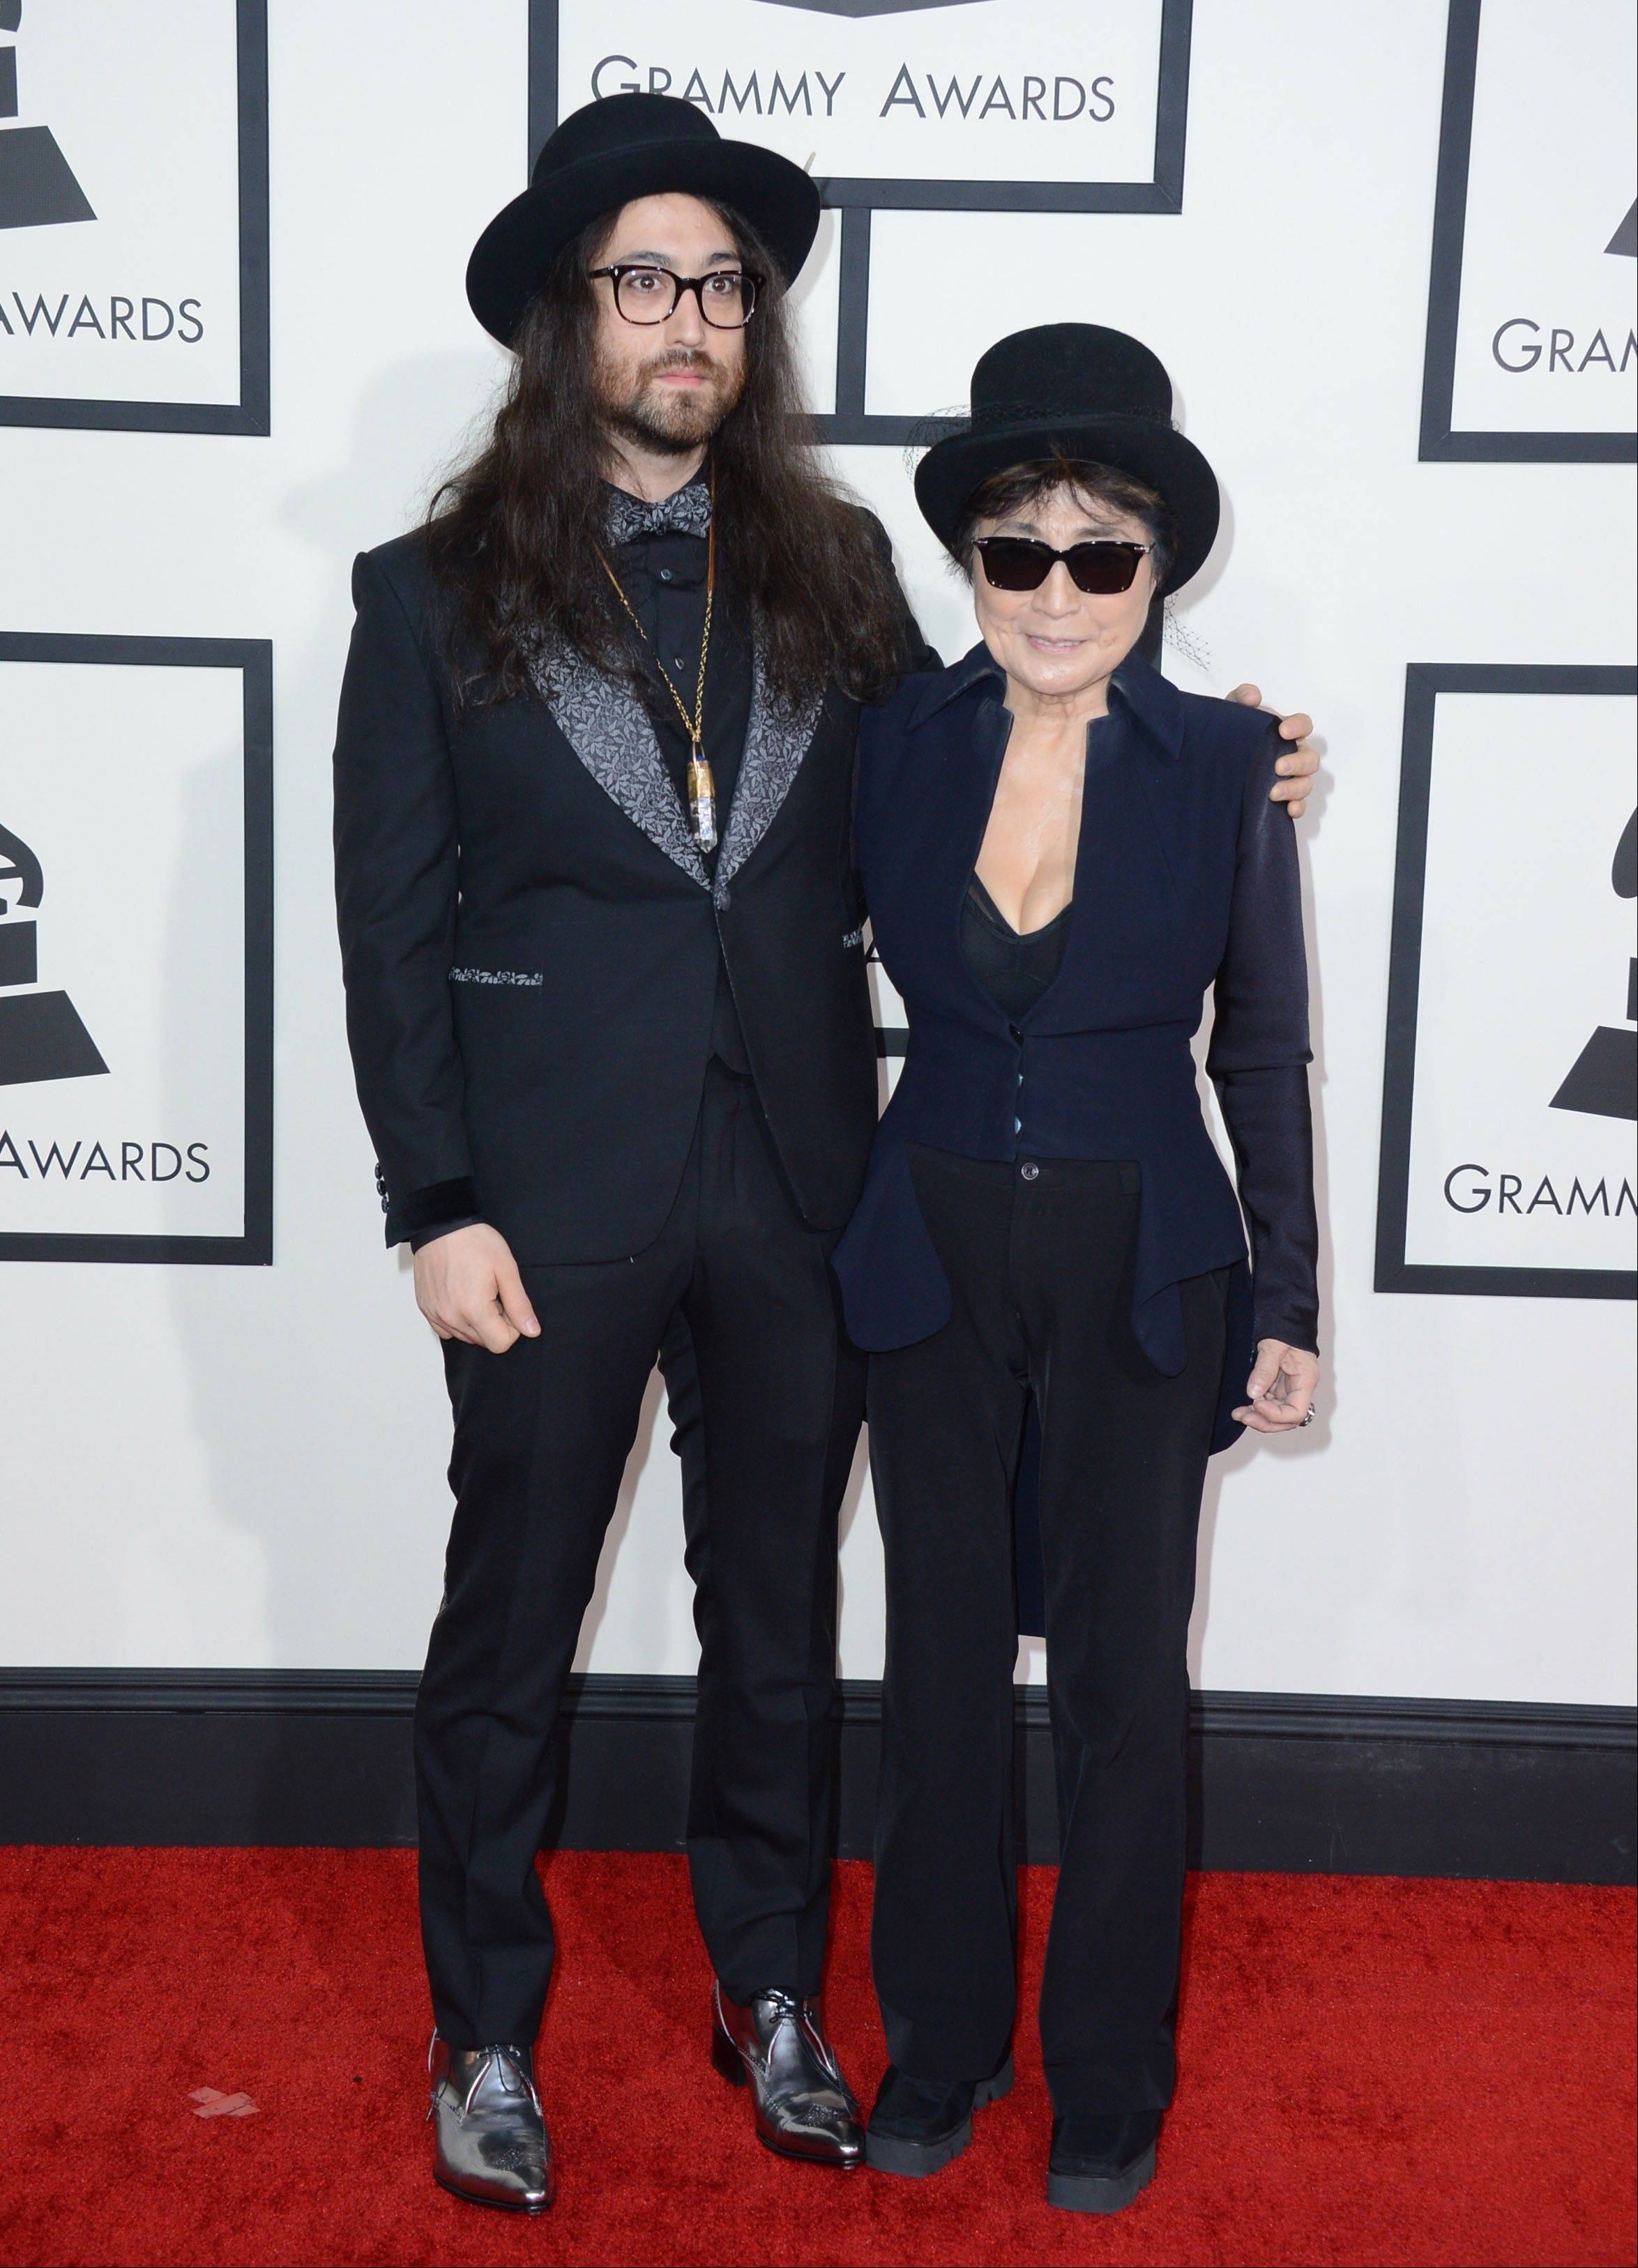 Sean Lennon, left, and Yoko Ono arrive at the 56th annual Grammy Awards at Staples Center on Sunday in Los Angeles.